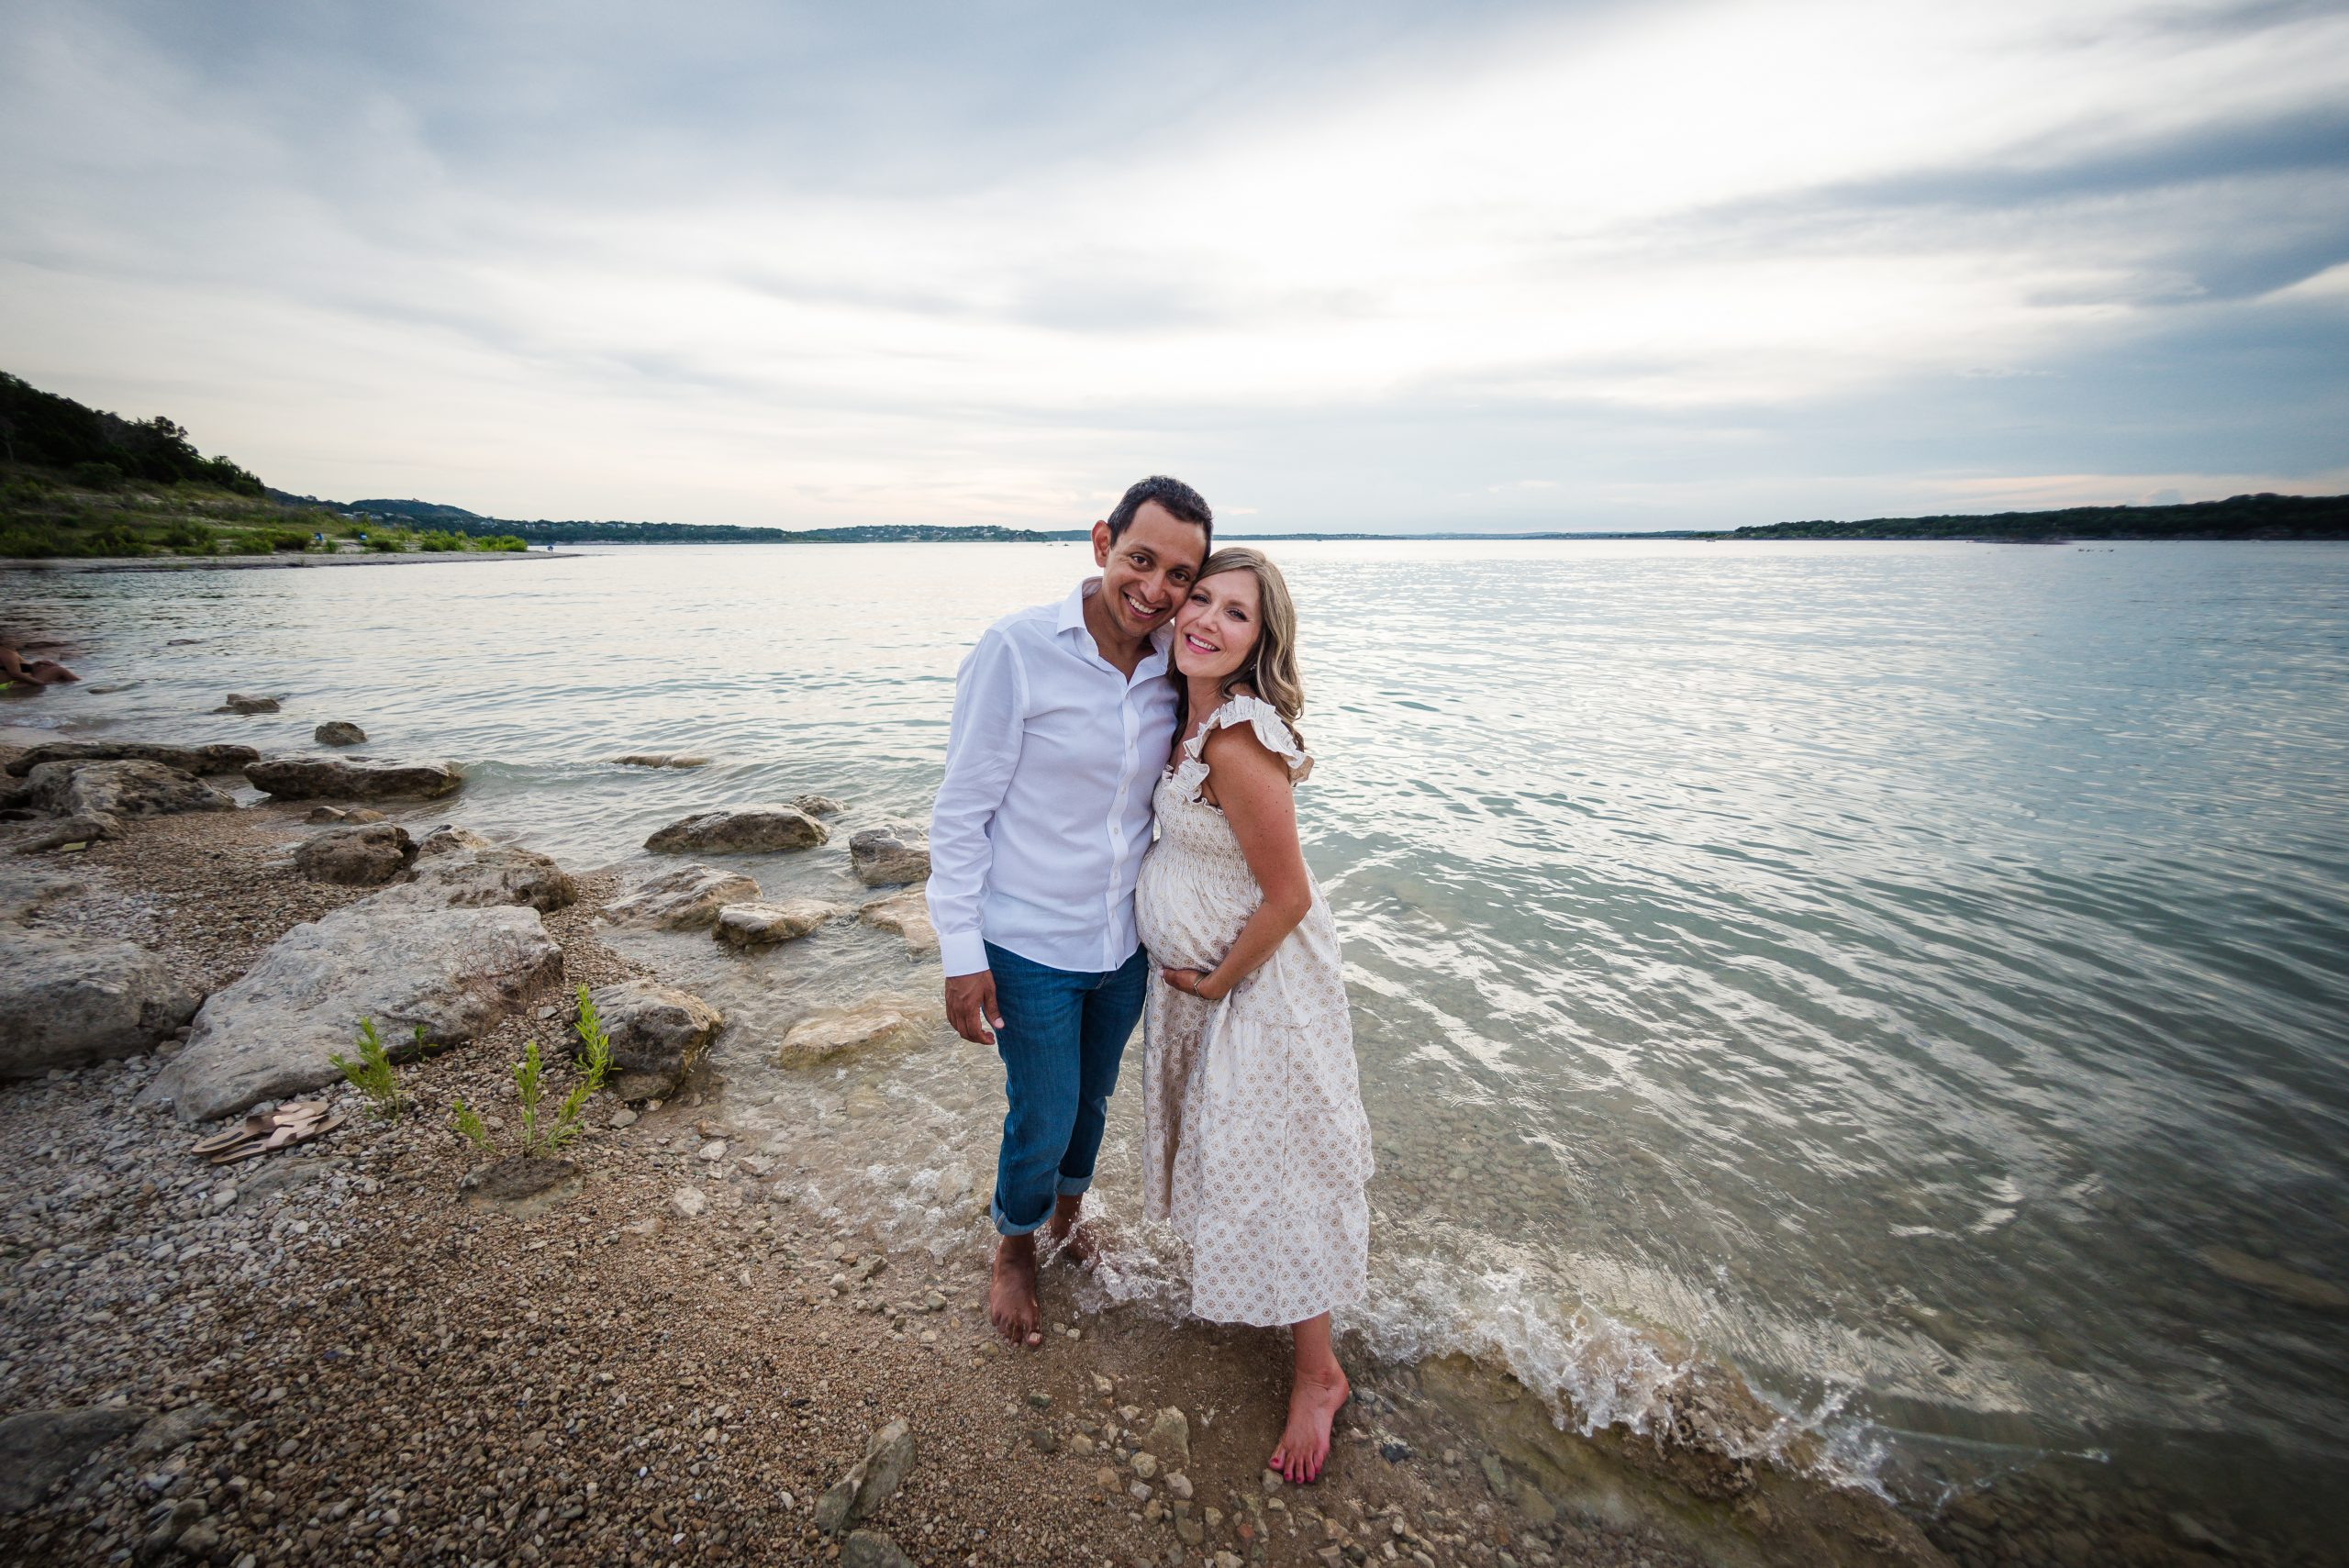 Maternity Photography Session At Canyon Lake, Texas In July Gruene Photography 31